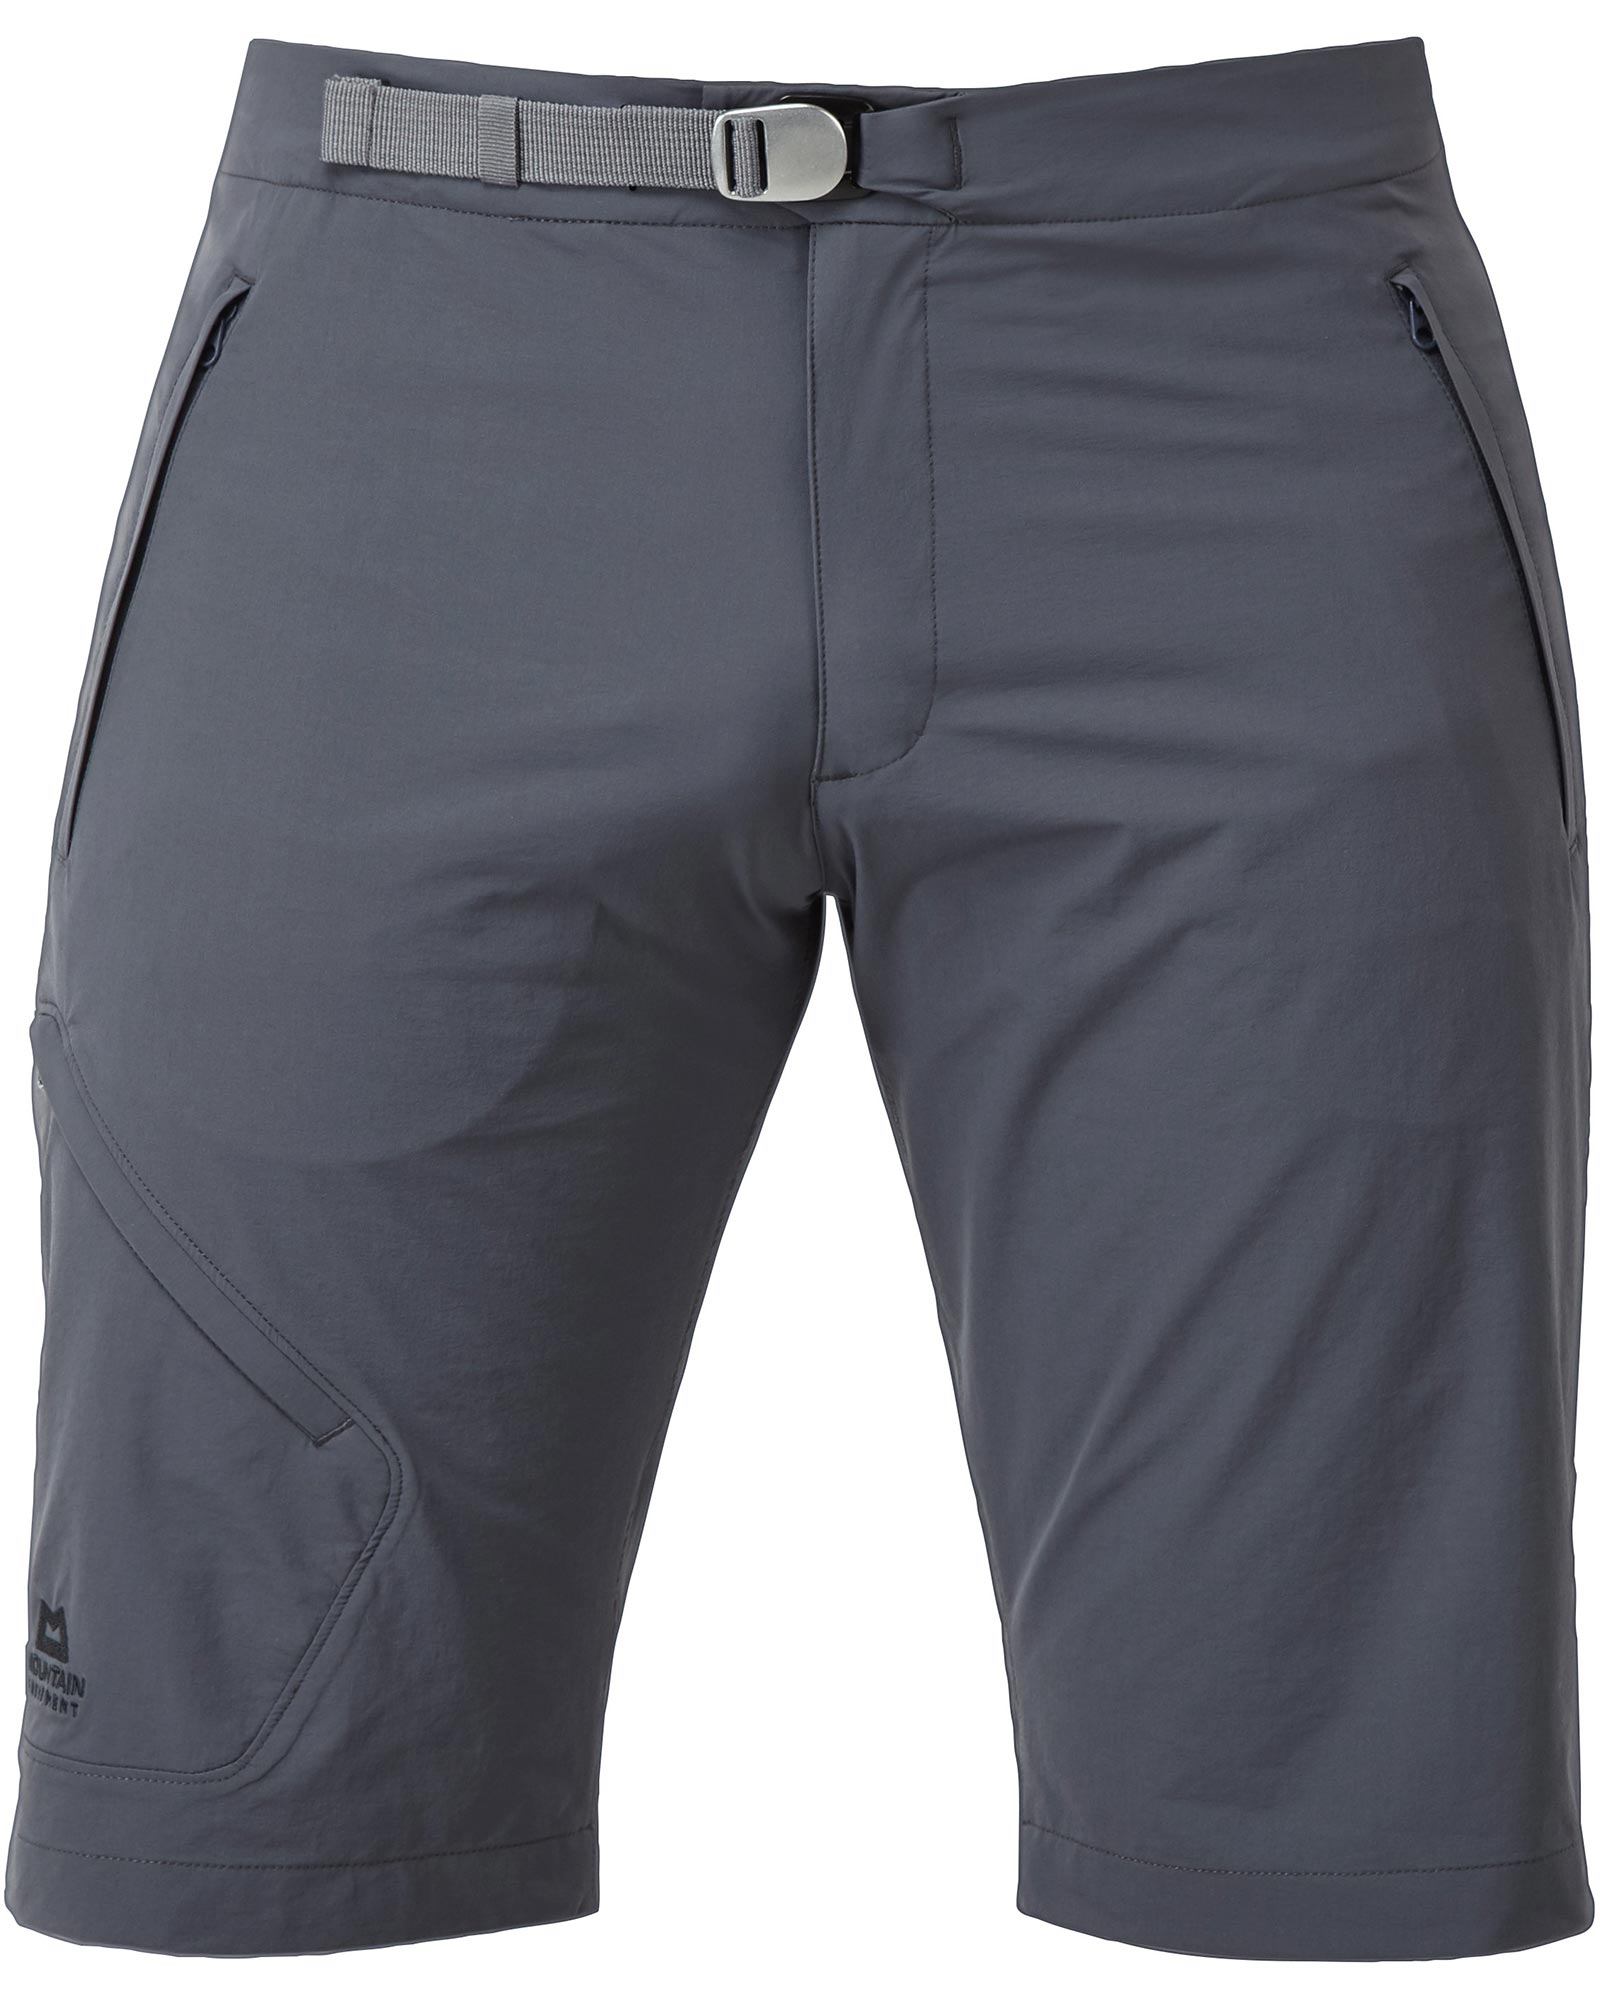 Product image of Mountain equipment Men's Comici Shorts